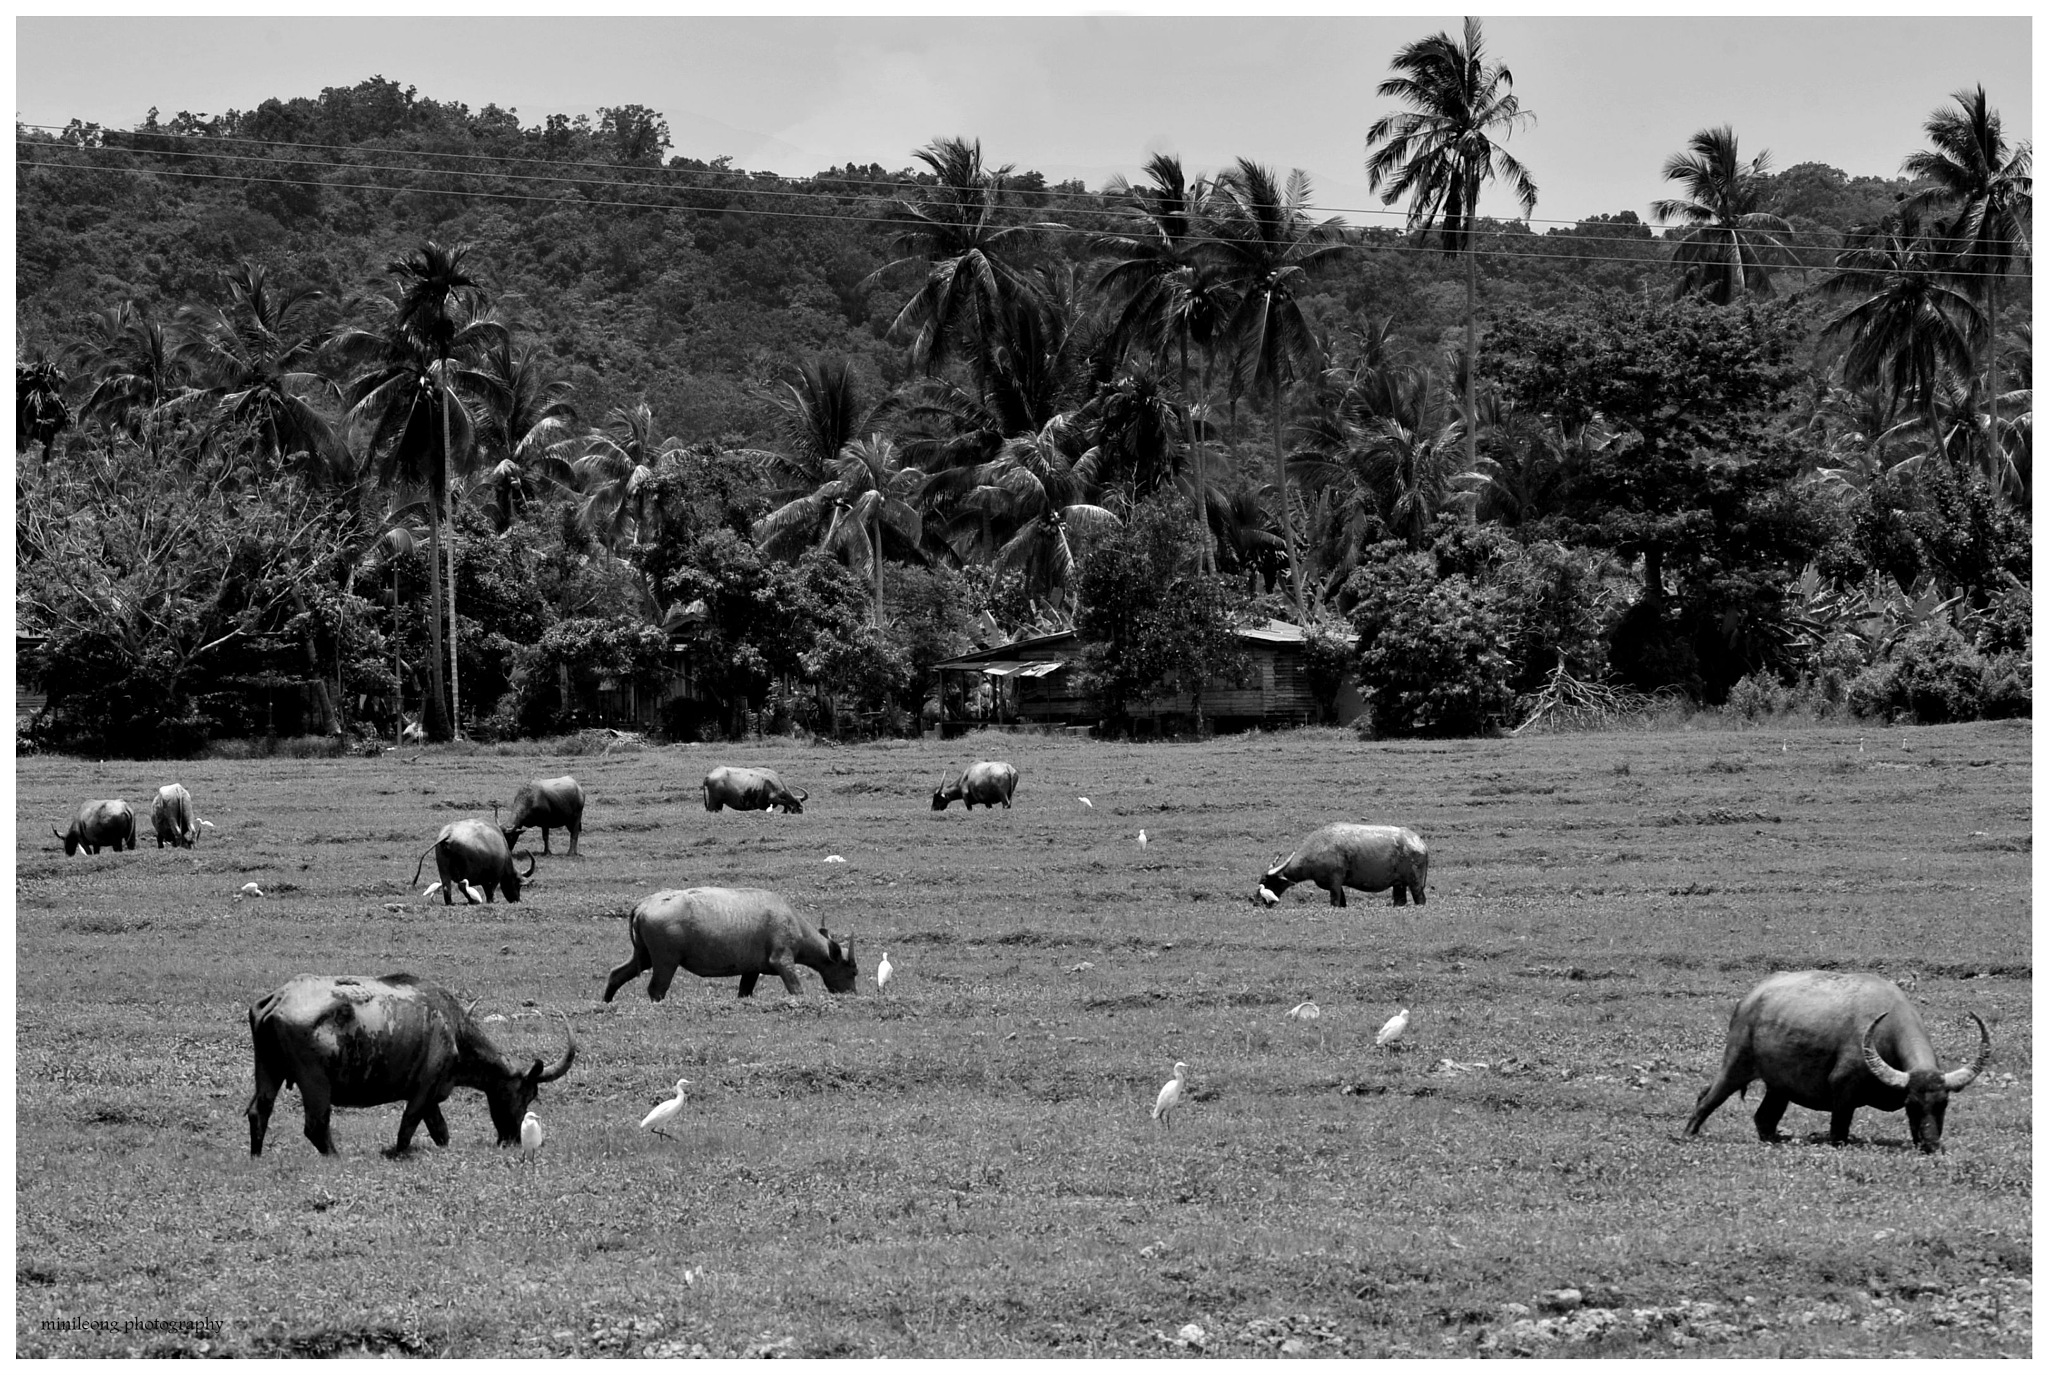 Beauty of Malaysia 07: Rural Malay village with buffalo relax on field by minileong